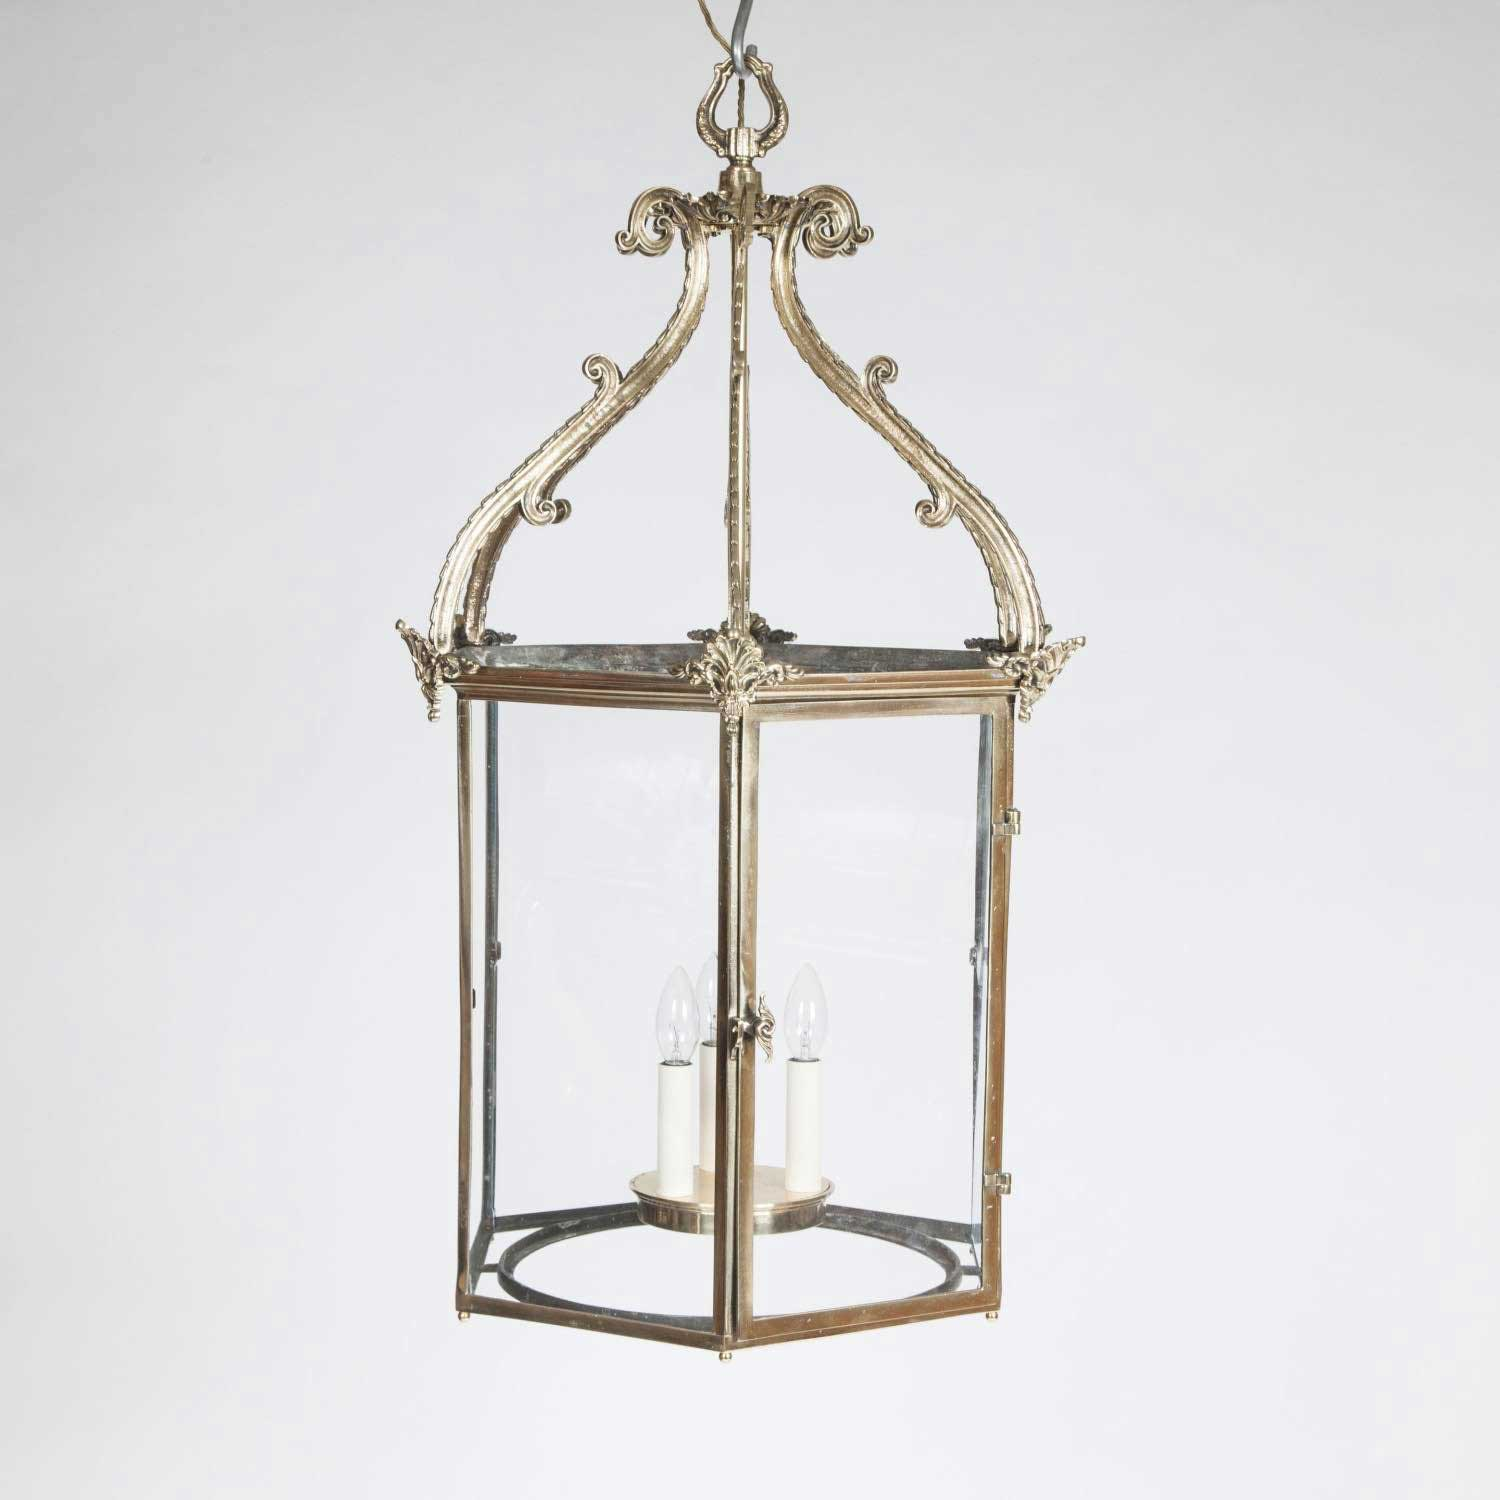 HEXAGONAL BRASS HALL LANTERN